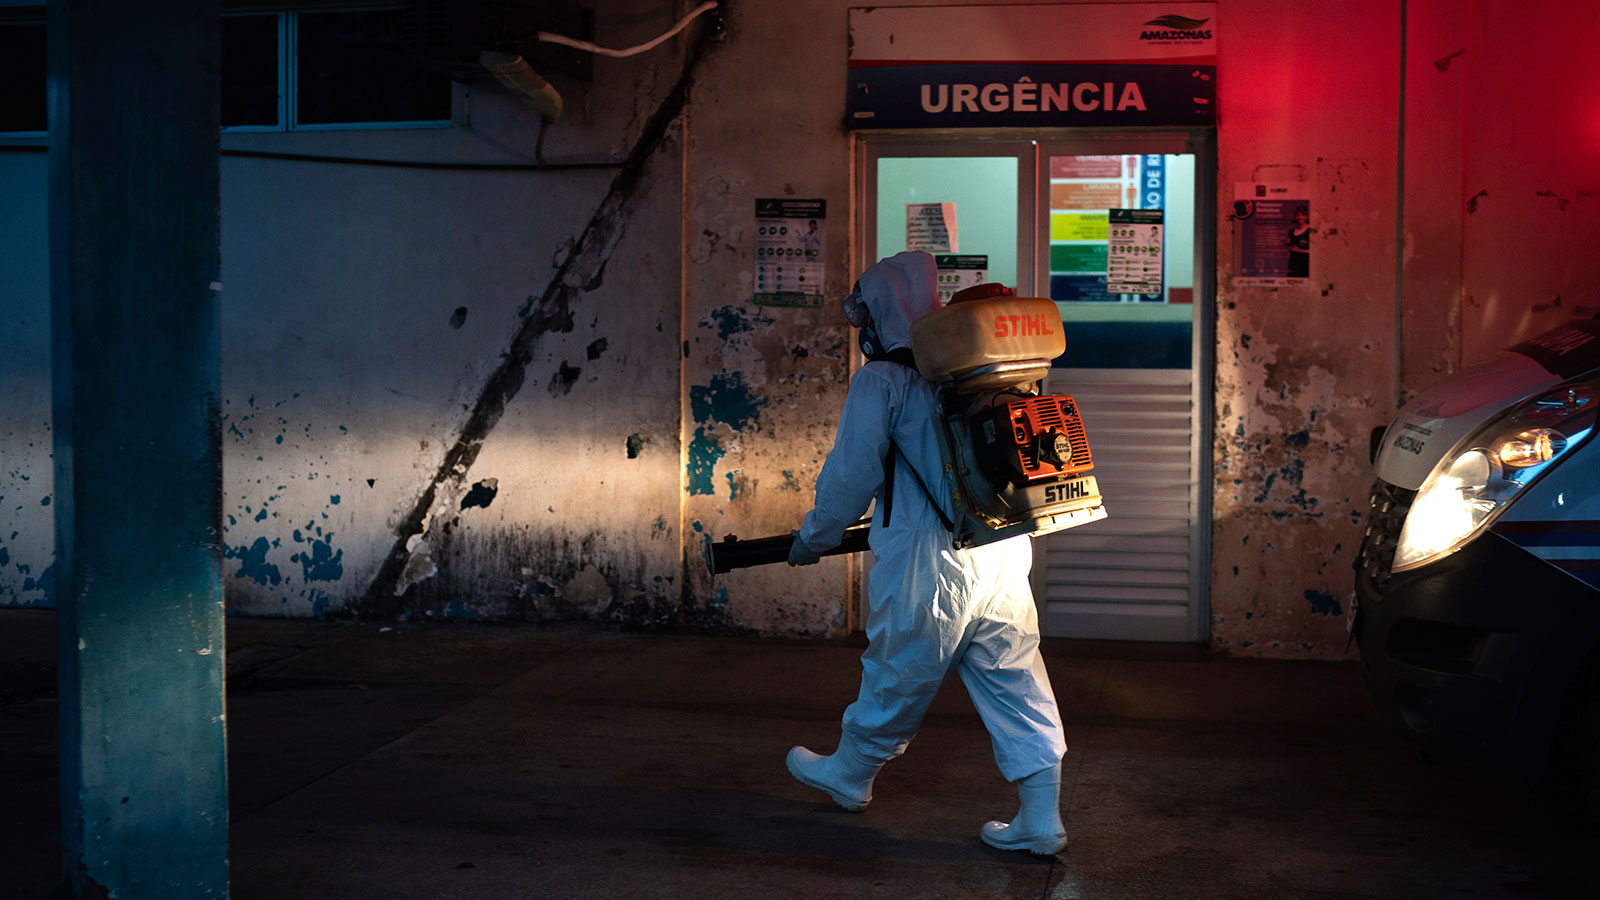 A worker sprays disinfectant to help contain the spread of the coronavirus outside a hospital in Manacapuru, Amazonas state, Brazil on June 2.